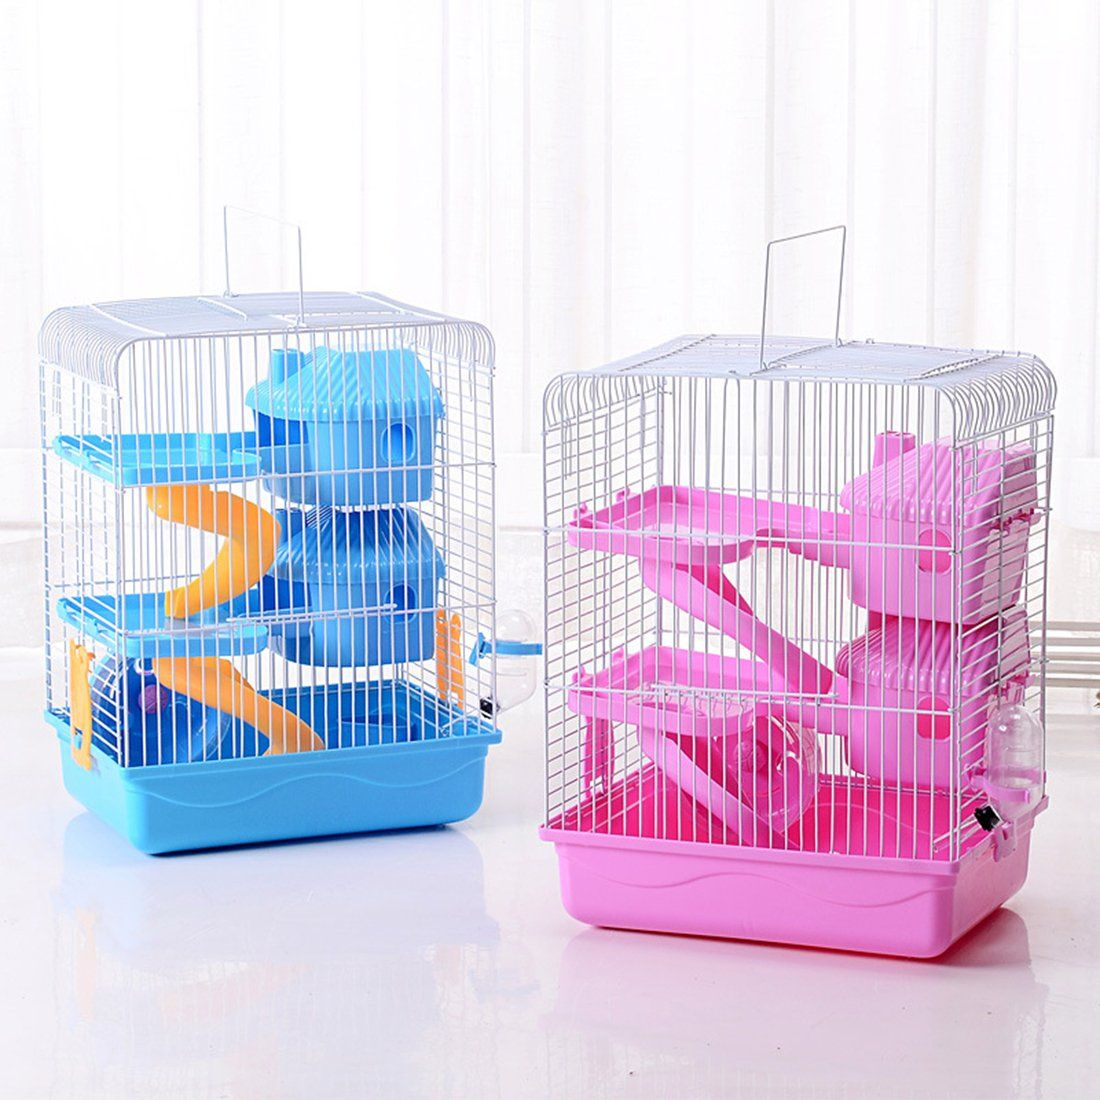 Jtengyao Hamster Mouse Hamster Cage Luxury Castle For Small Indoor Pet House Small Animal House Diy 3 Floor Cages Hamster Cage Small Pet Supplies Hamster House